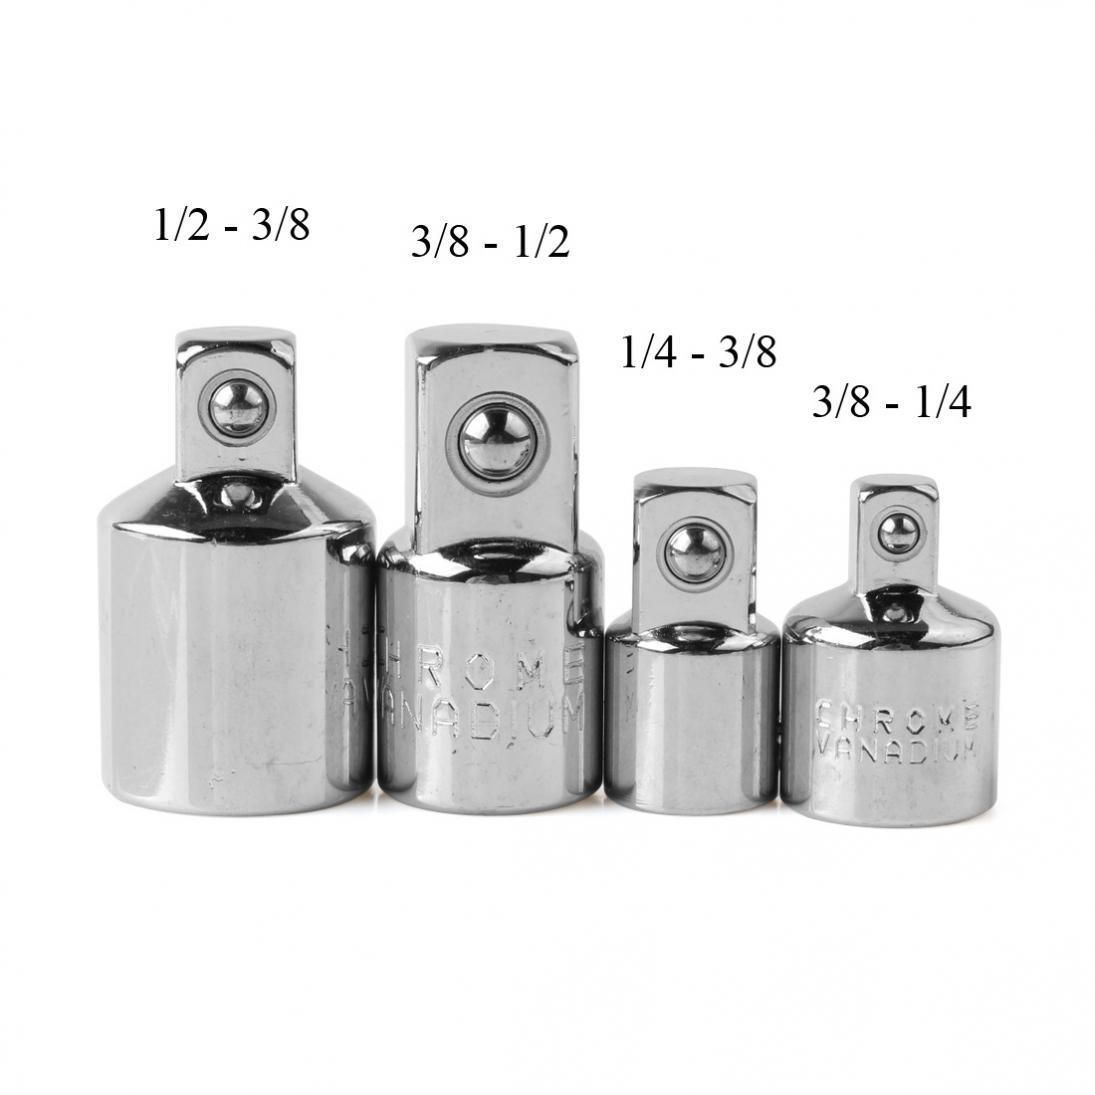 1 4 3 8 3 8 1 2 Male To Female Socket Ratchet Tool Converter Reducer Adapter Socket Wrenches Ratchet Tool Hand Tool Set